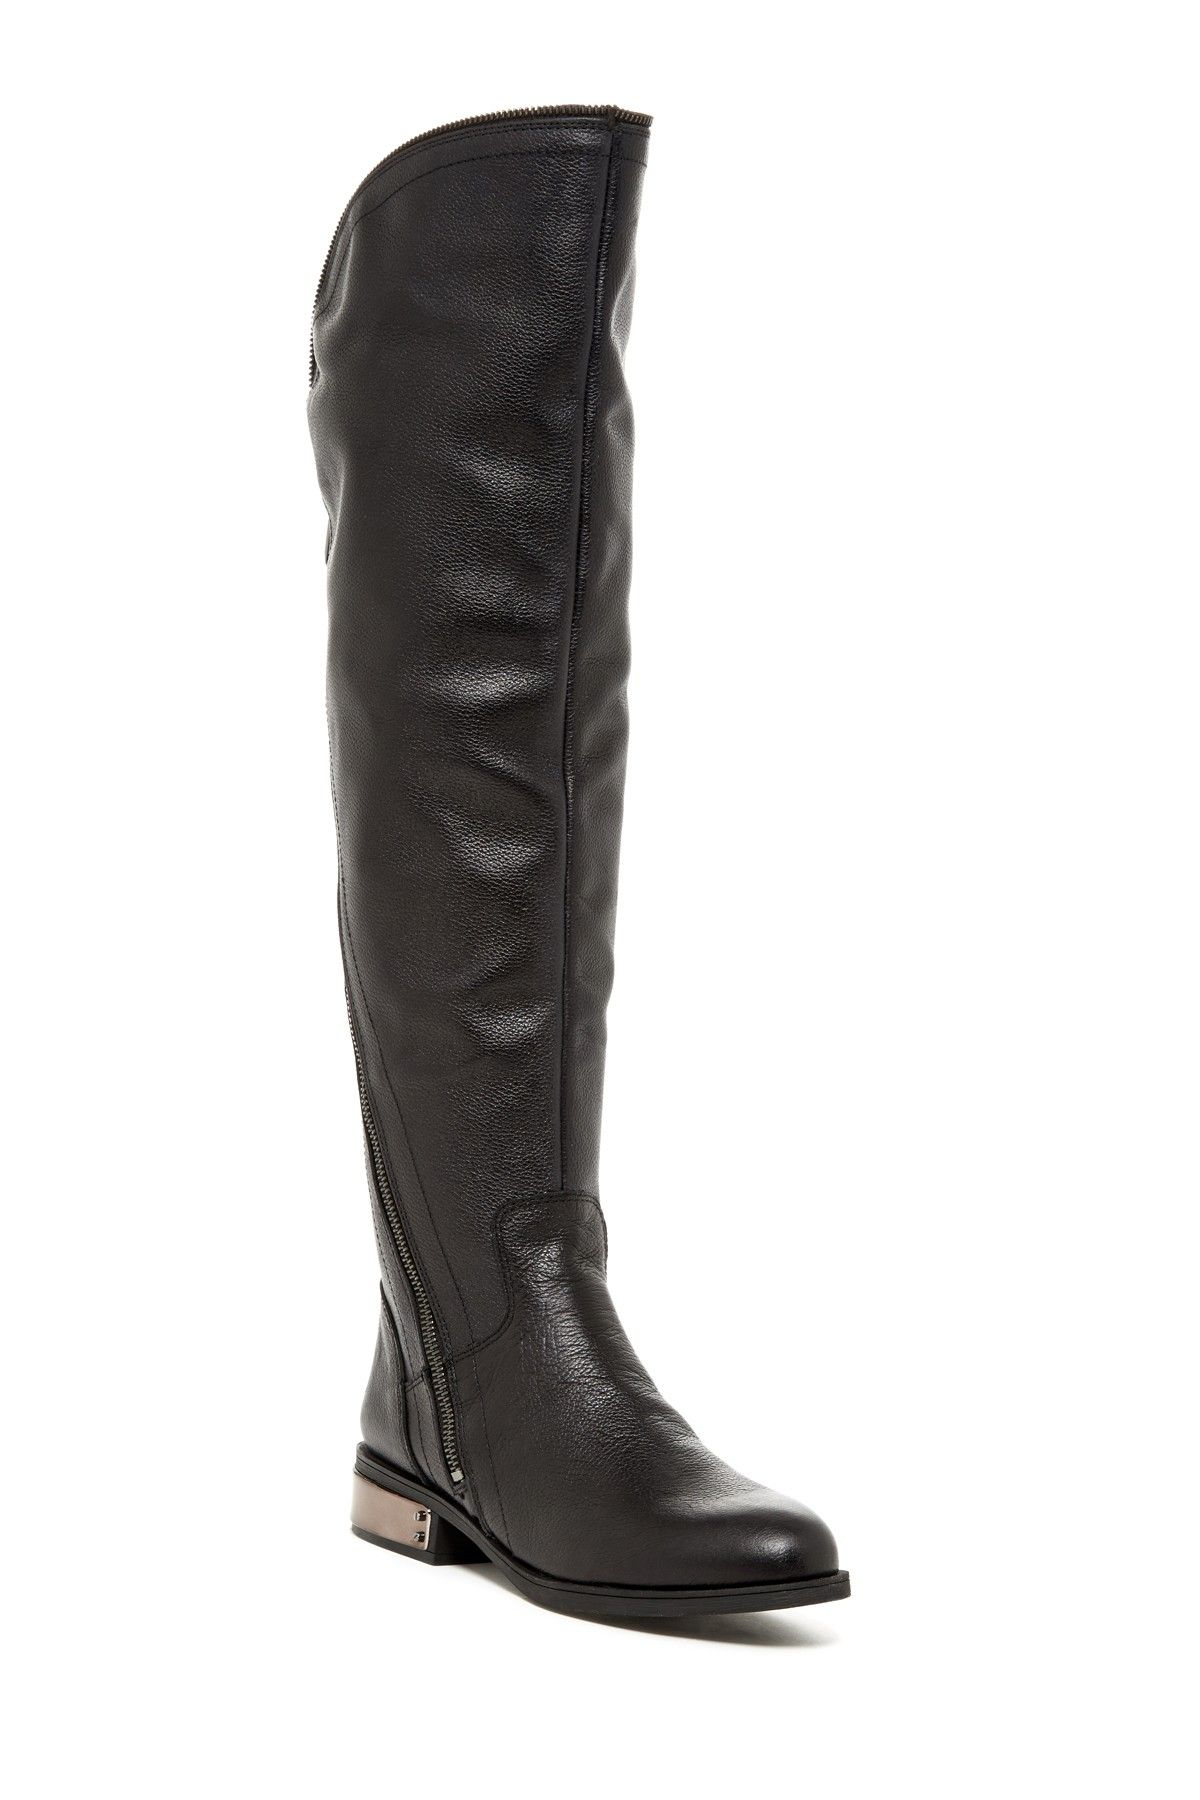 Navaro Knee High Leather Boot by Fergie